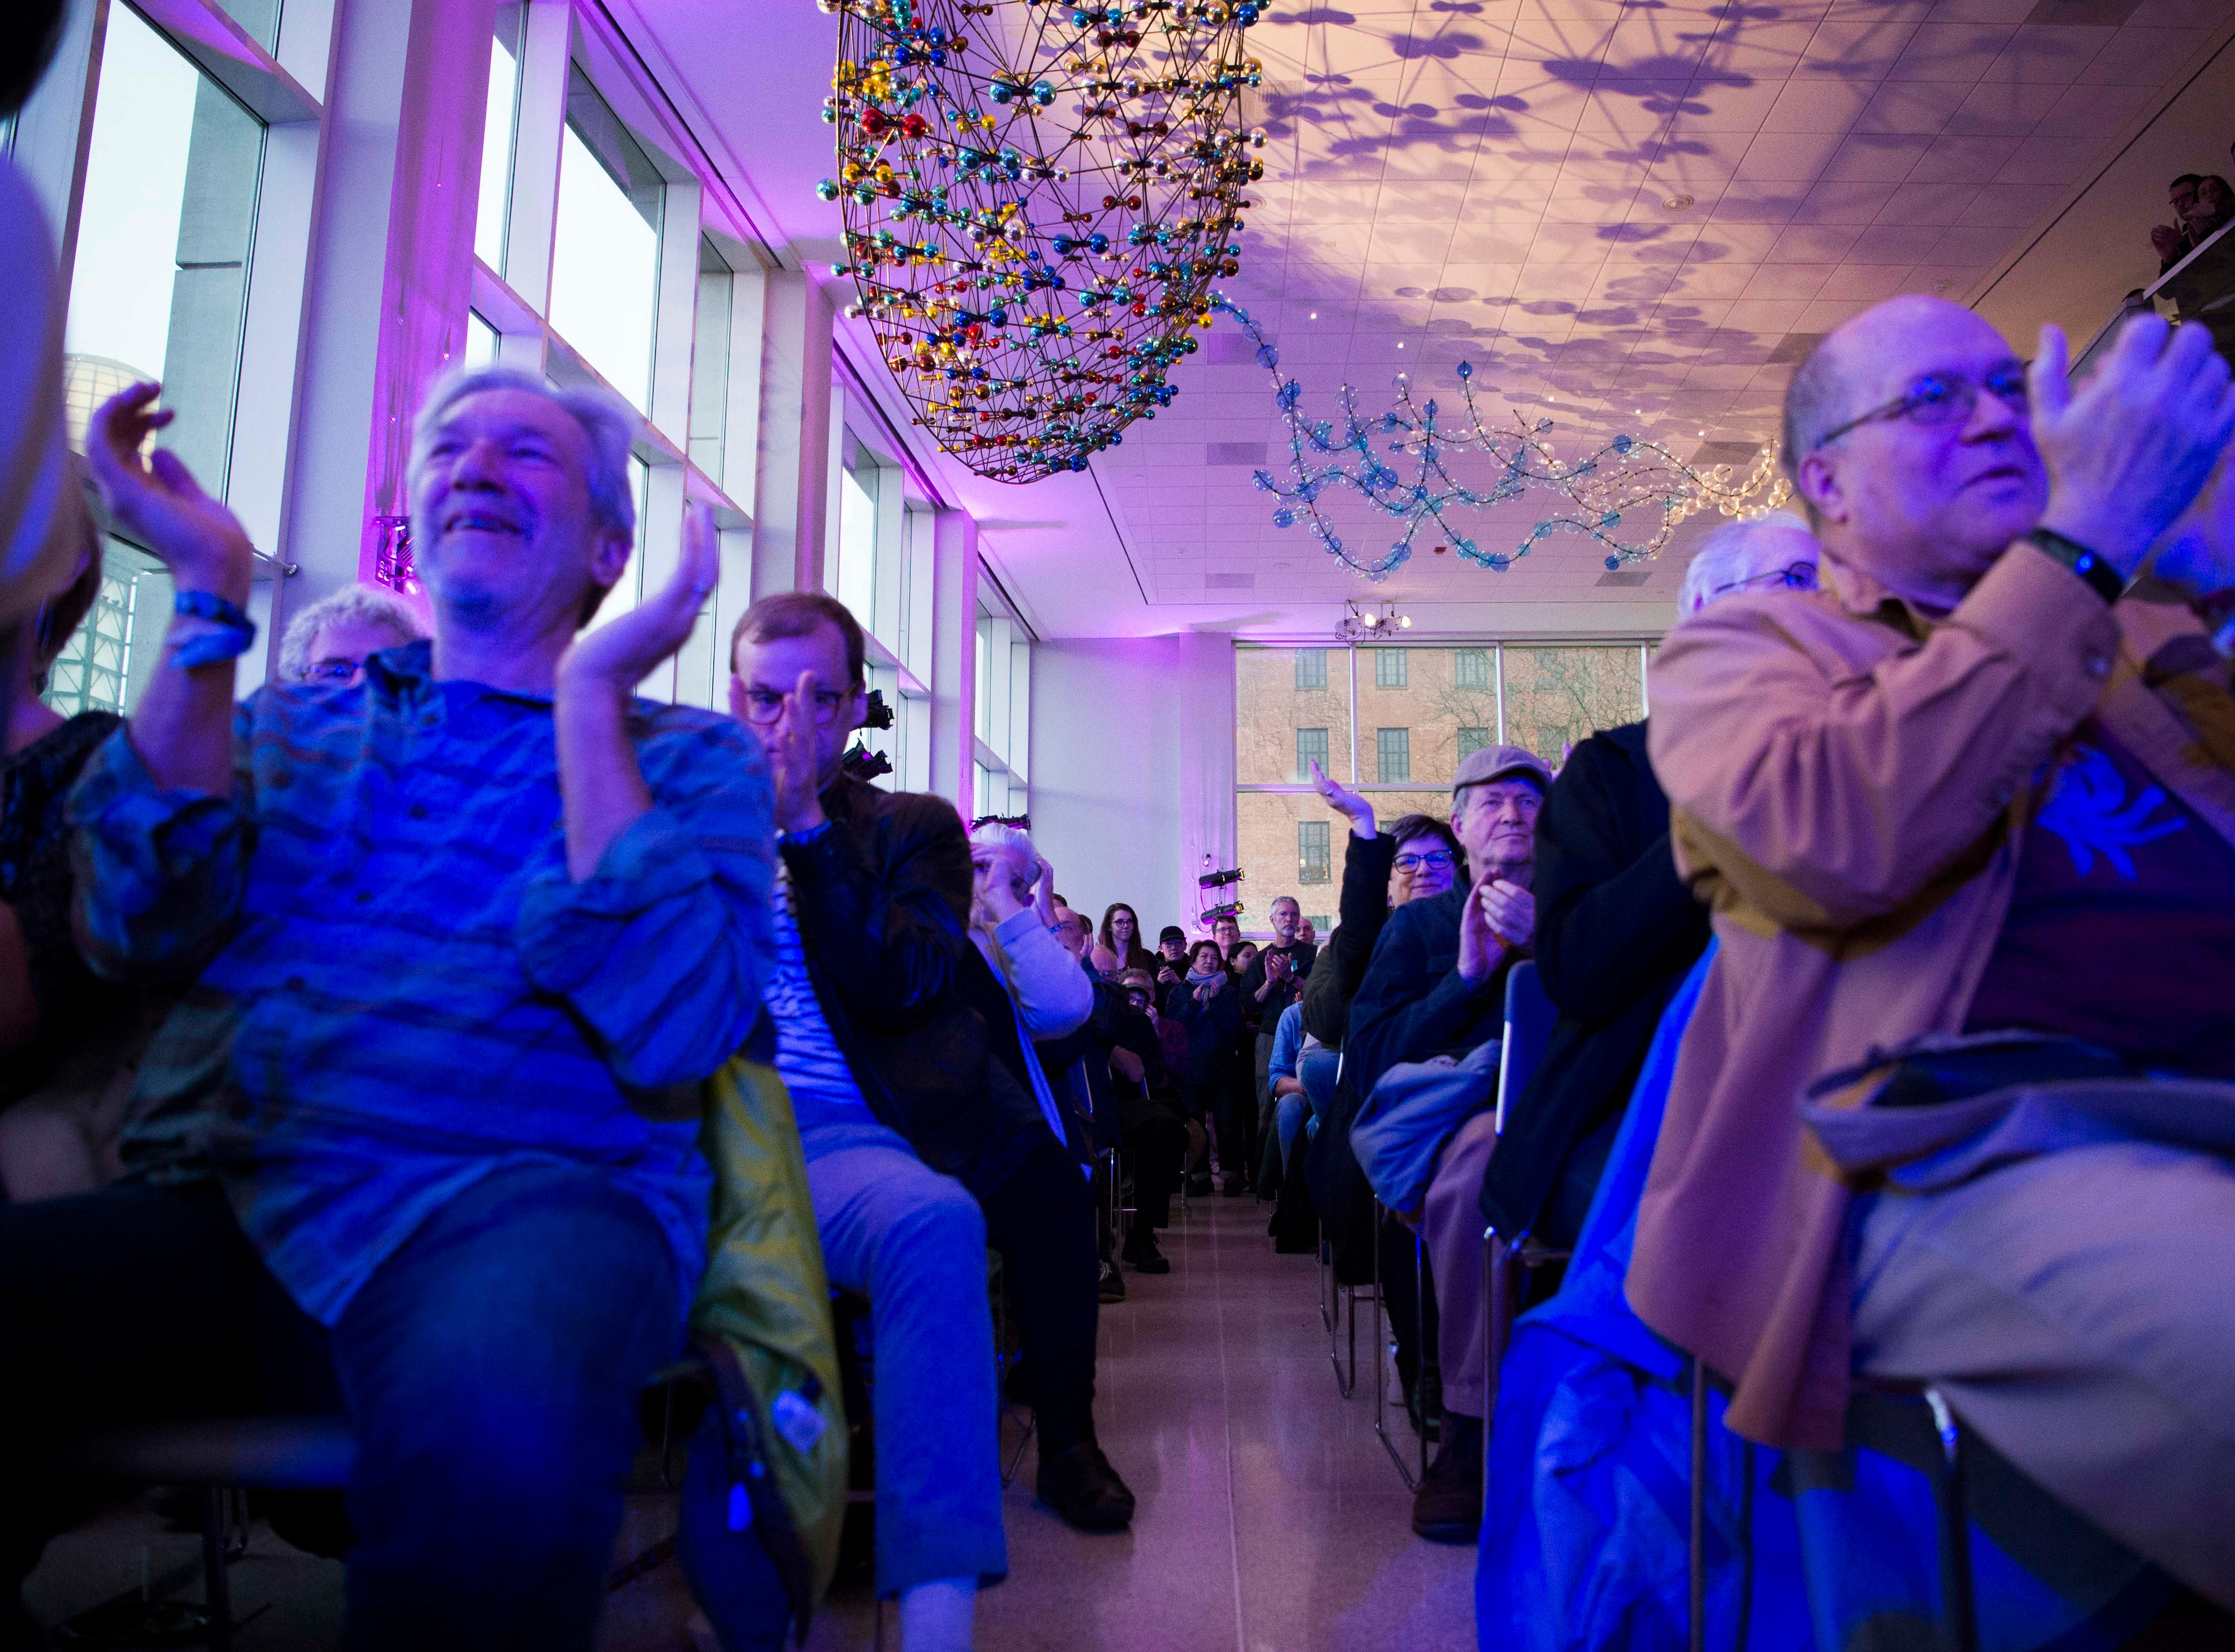 Attendees clap at the end of a song performed by Roomful of Teeth in the Knoxville Museum of Art in Knoxville Thursday, March 21, 2019.